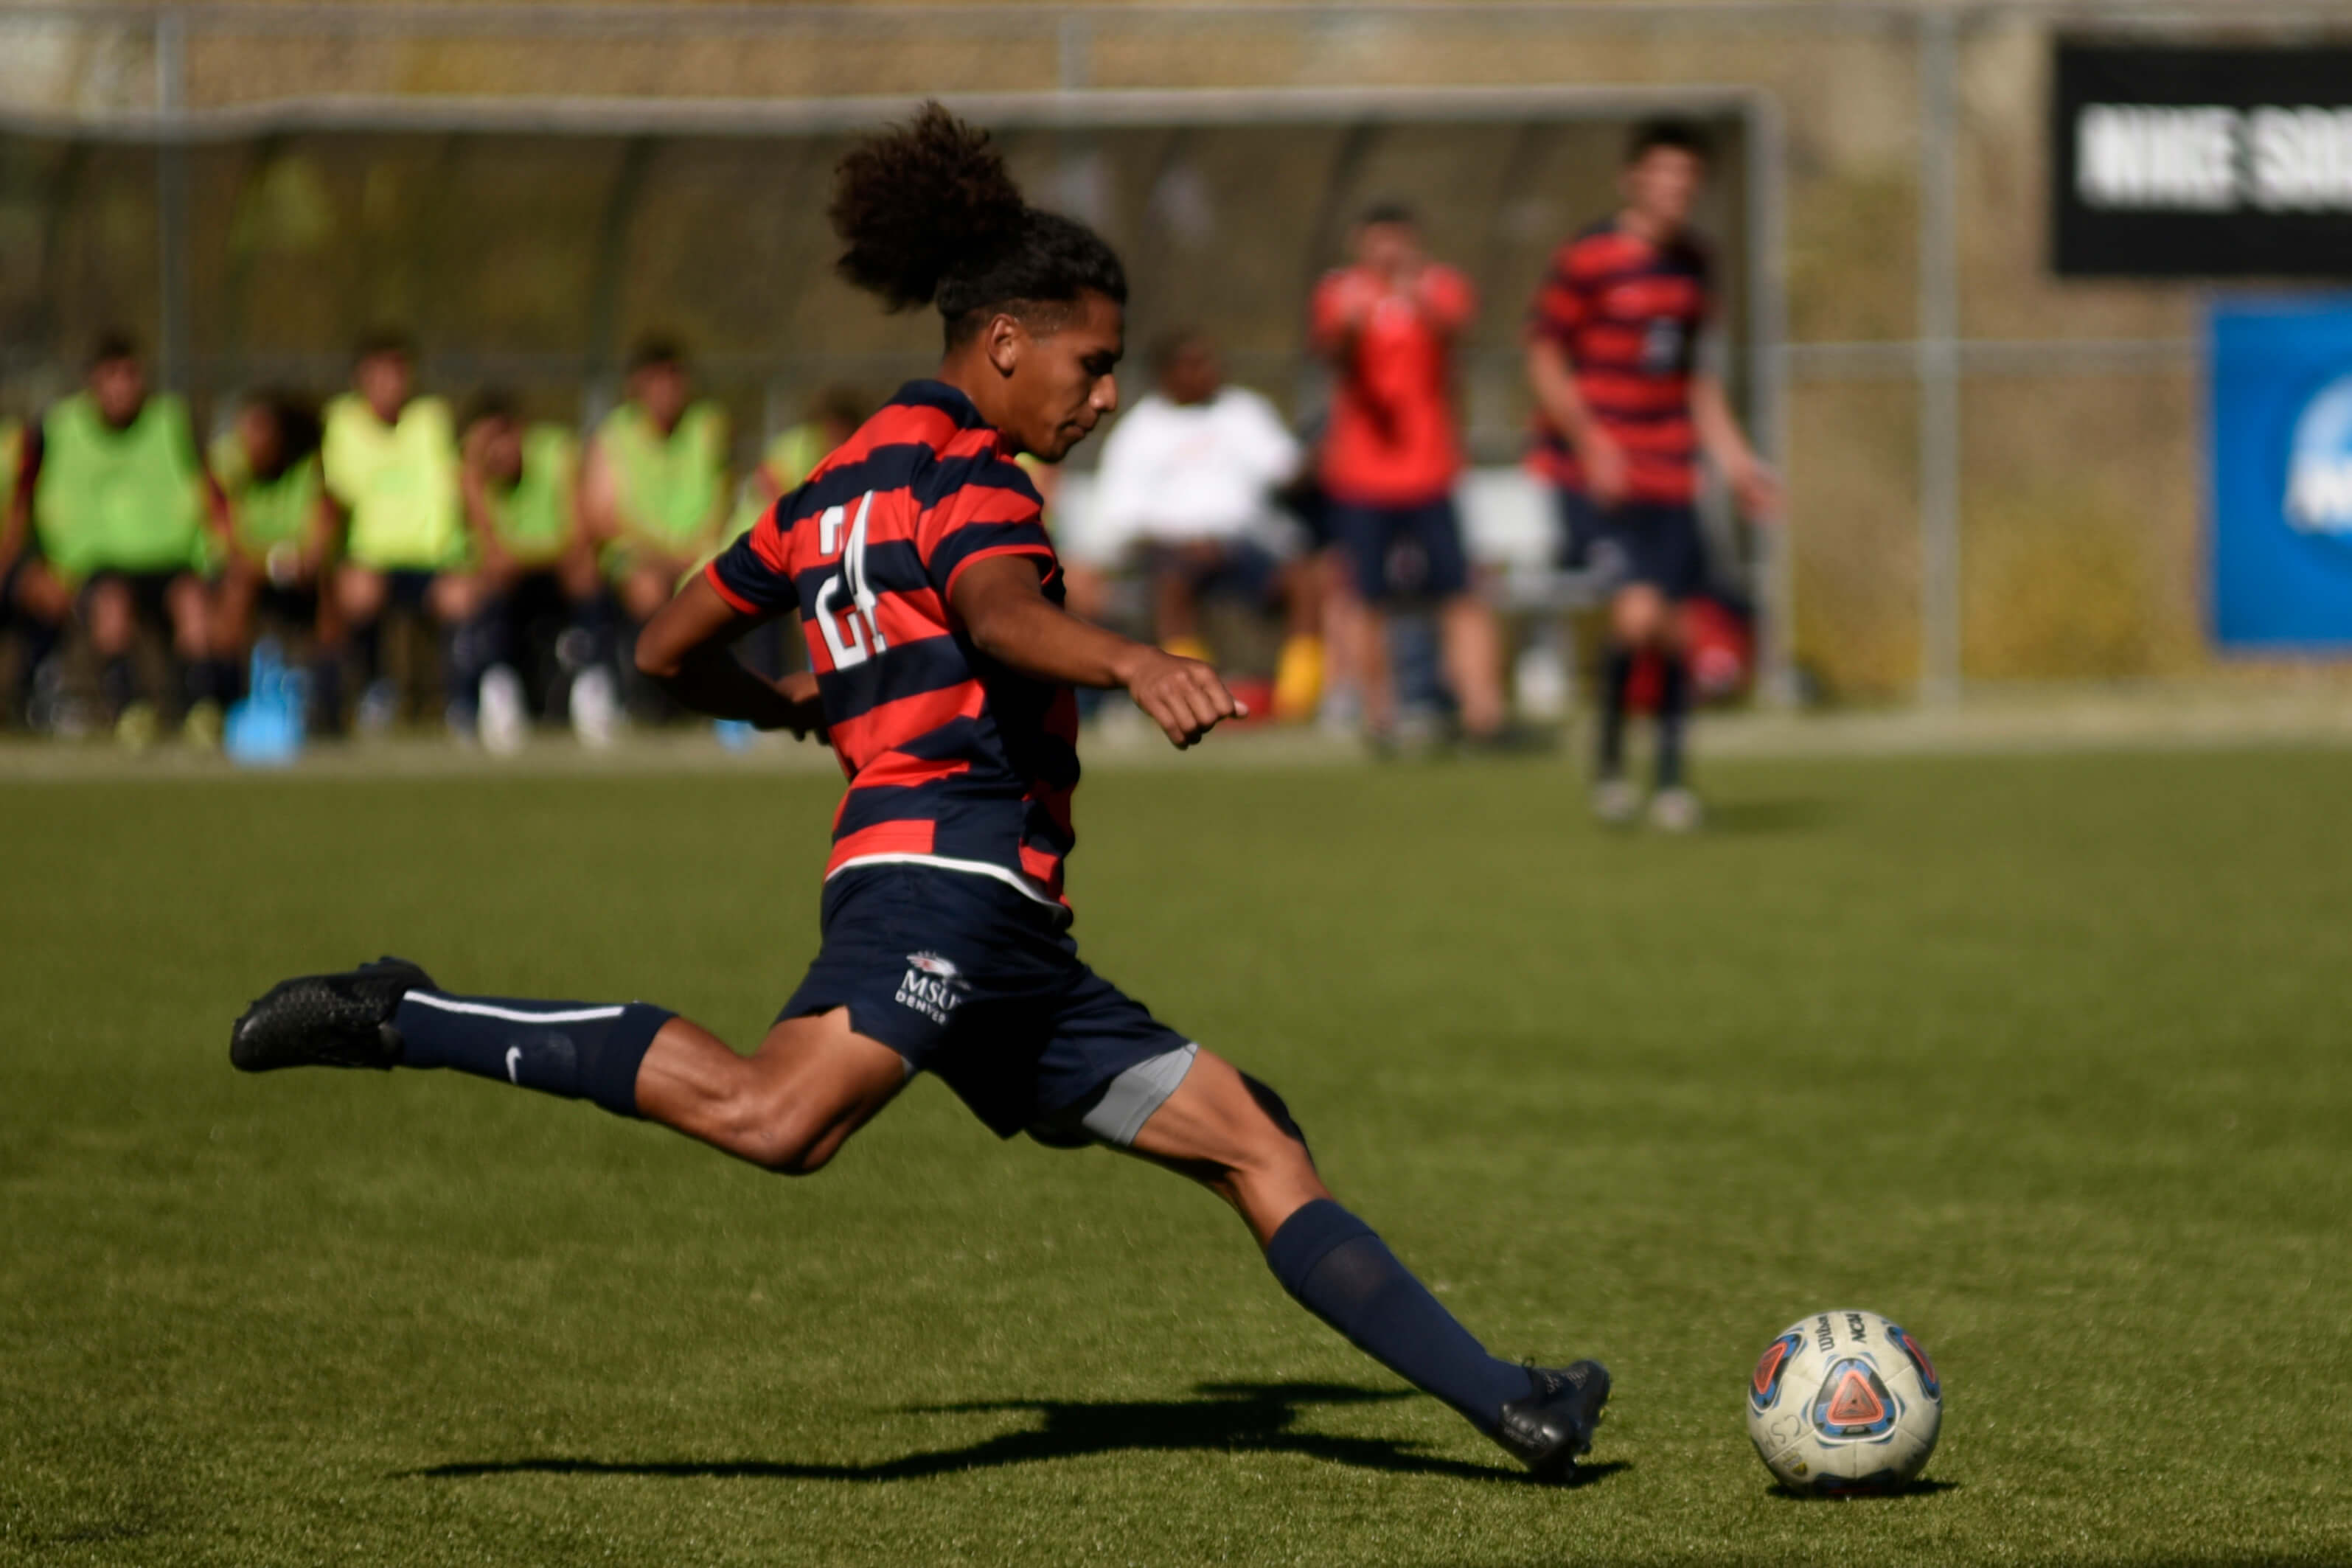 Nov. 2, 2016- MSU Denver's Defensemen, Brayan Molina, kicks the ball into play during the RMAC Men's Divison II Soccer game against Colorado School of Mines at Stermole Soccer Stadium in Golden, Colo. MSU defeated Mines 1-2 in overtime. Photo by Cherie Vasquez.